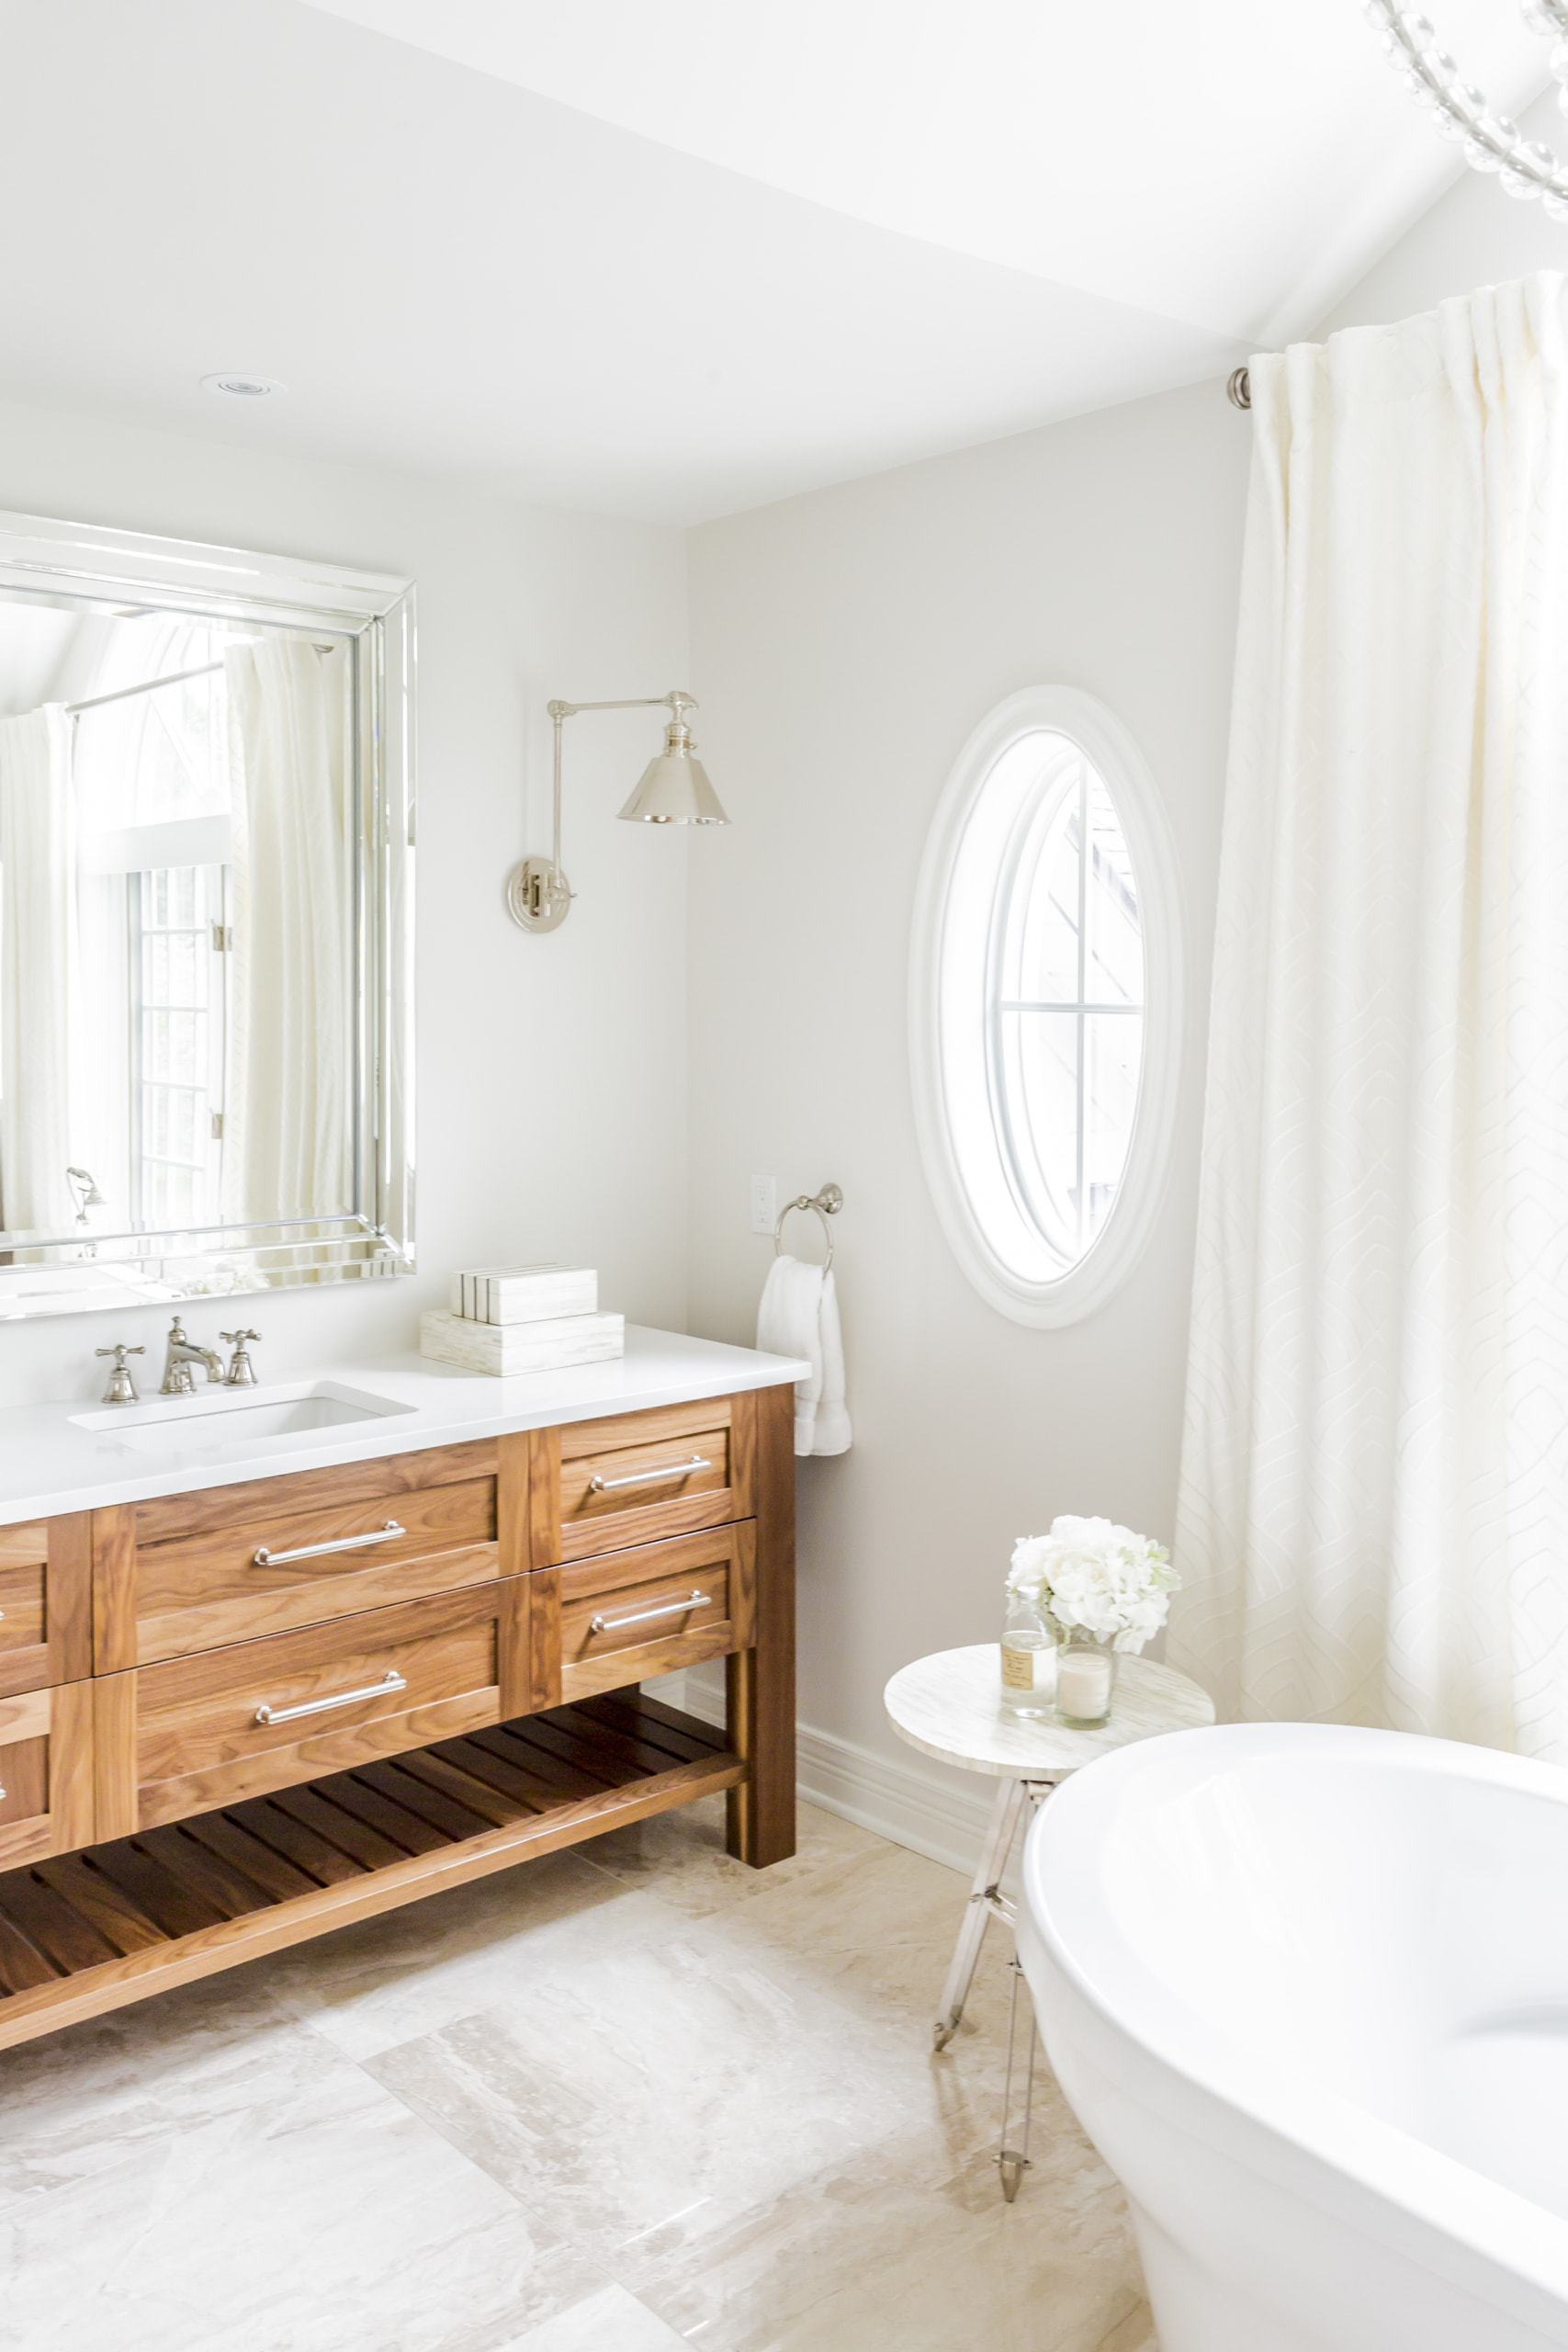 Clean, white bathroom with large double vanities